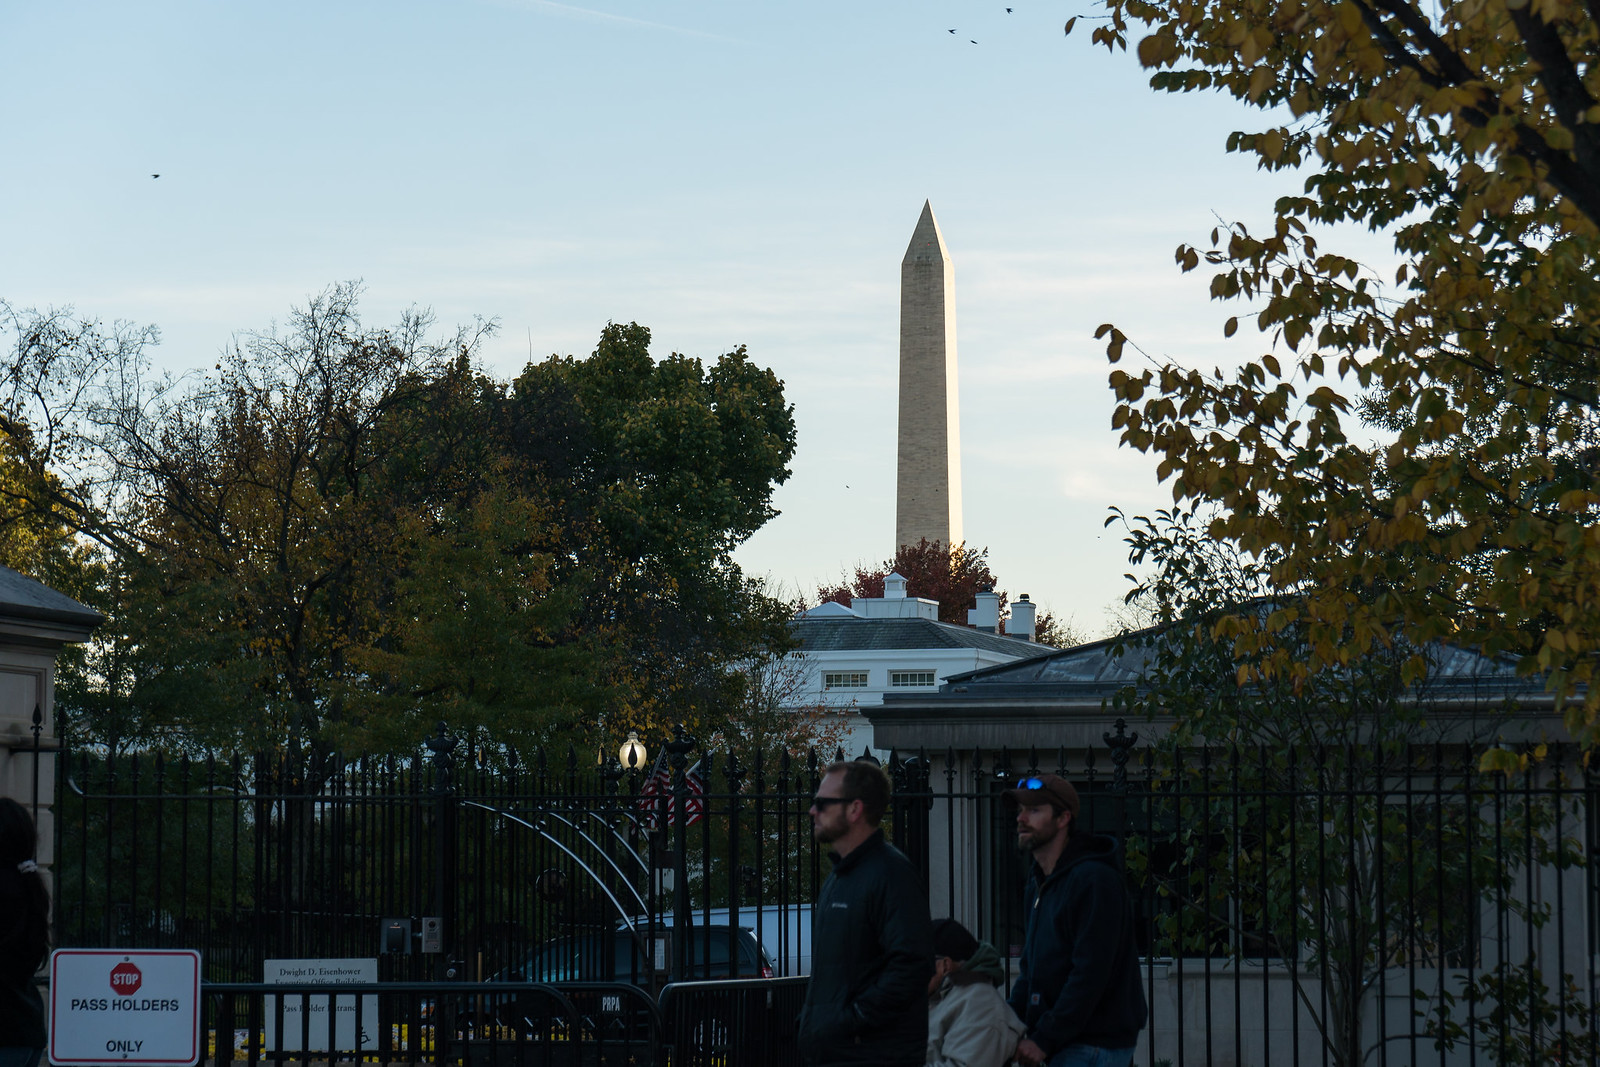 20171110_WashingtonDC_18